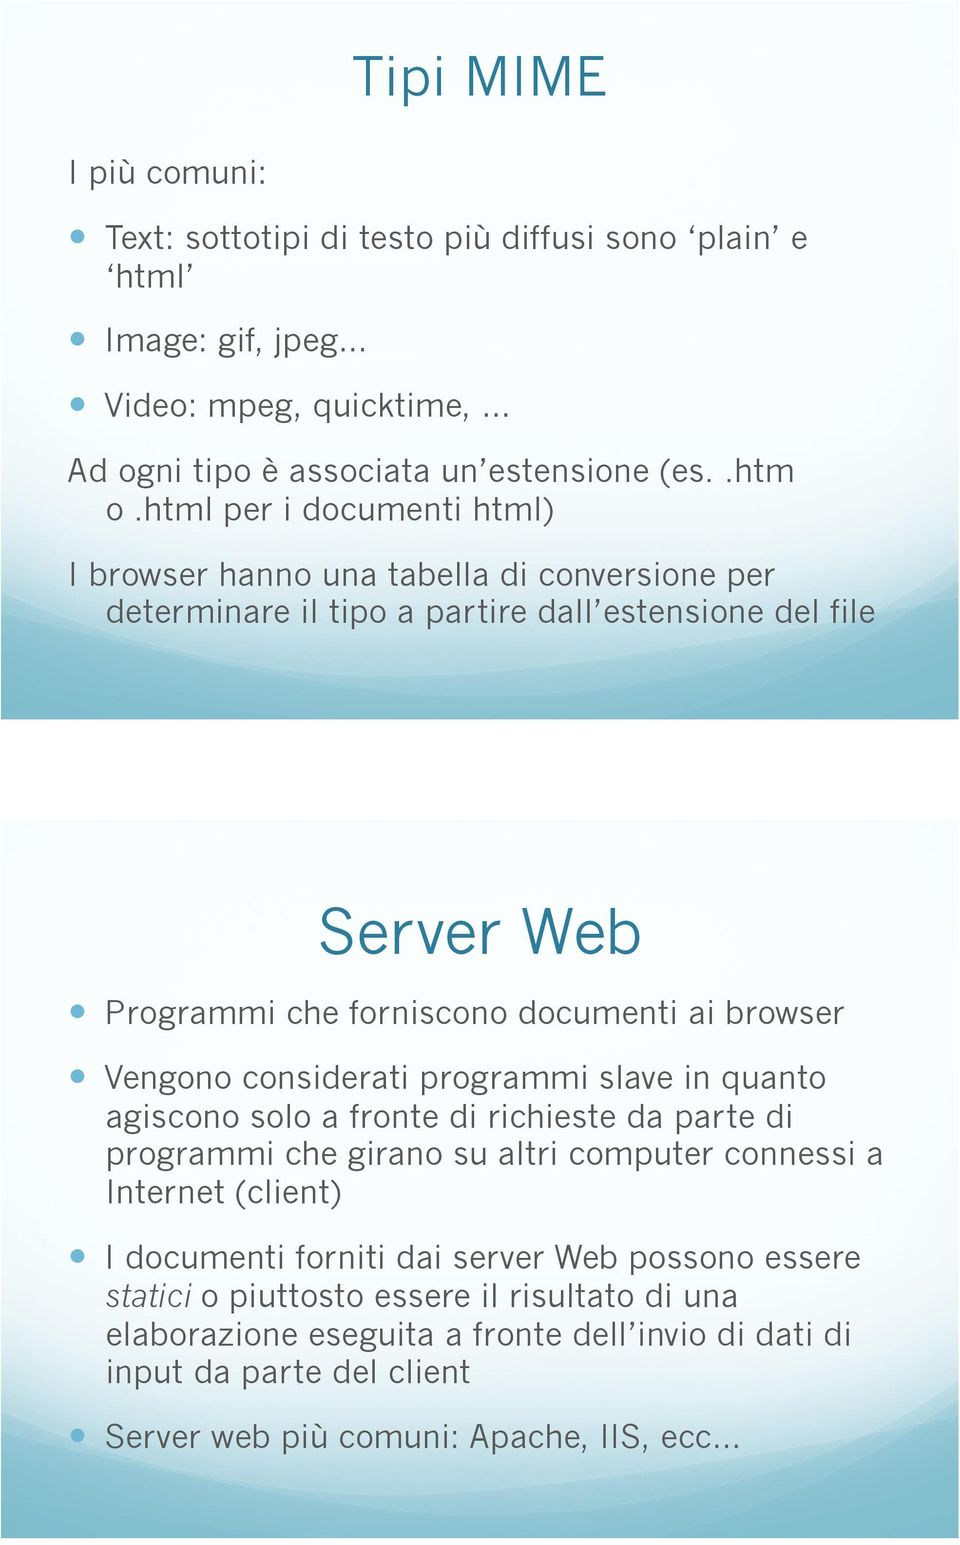 Programmi che forniscono documenti ai browser!